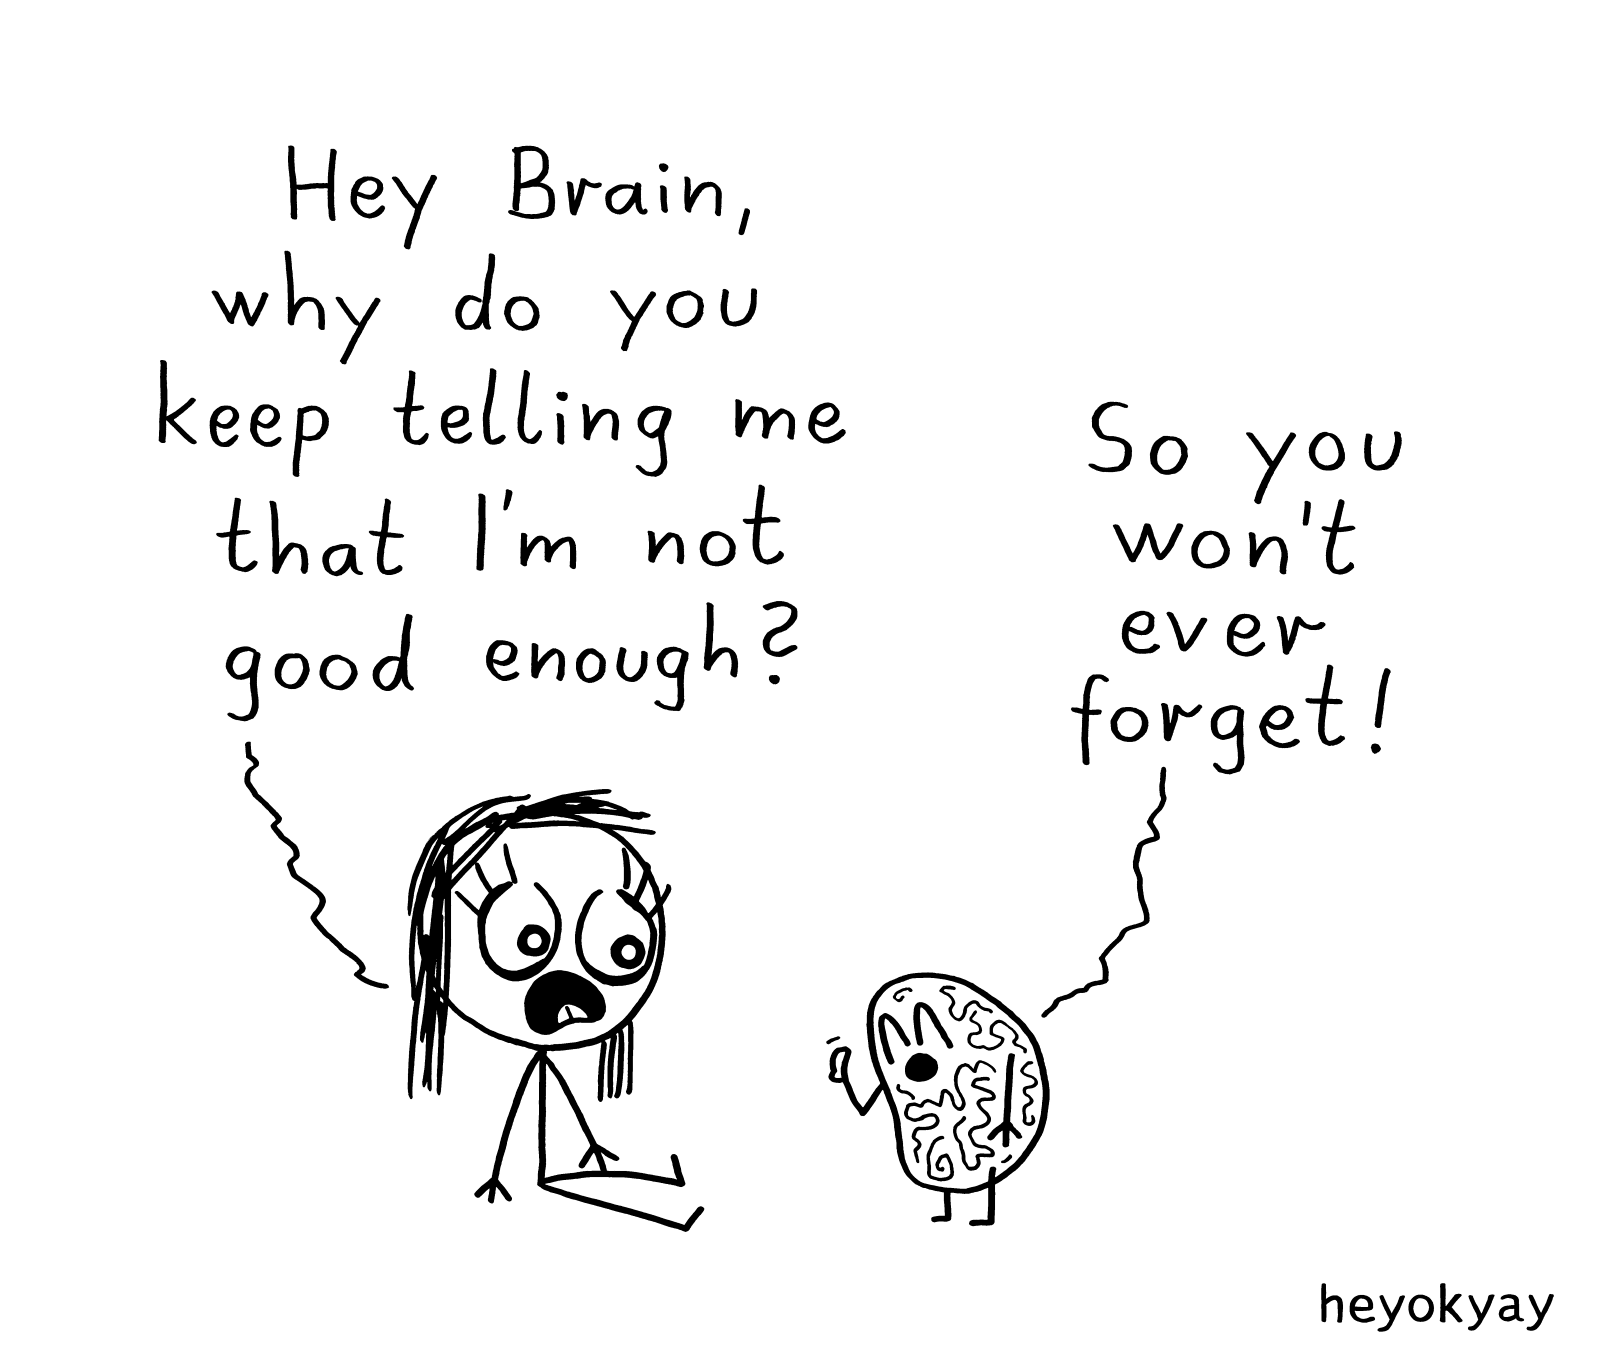 Hey brain, why do you keep telling me that I'm not good enough? So you won't ever forget! Hey Brain heyokyay comic